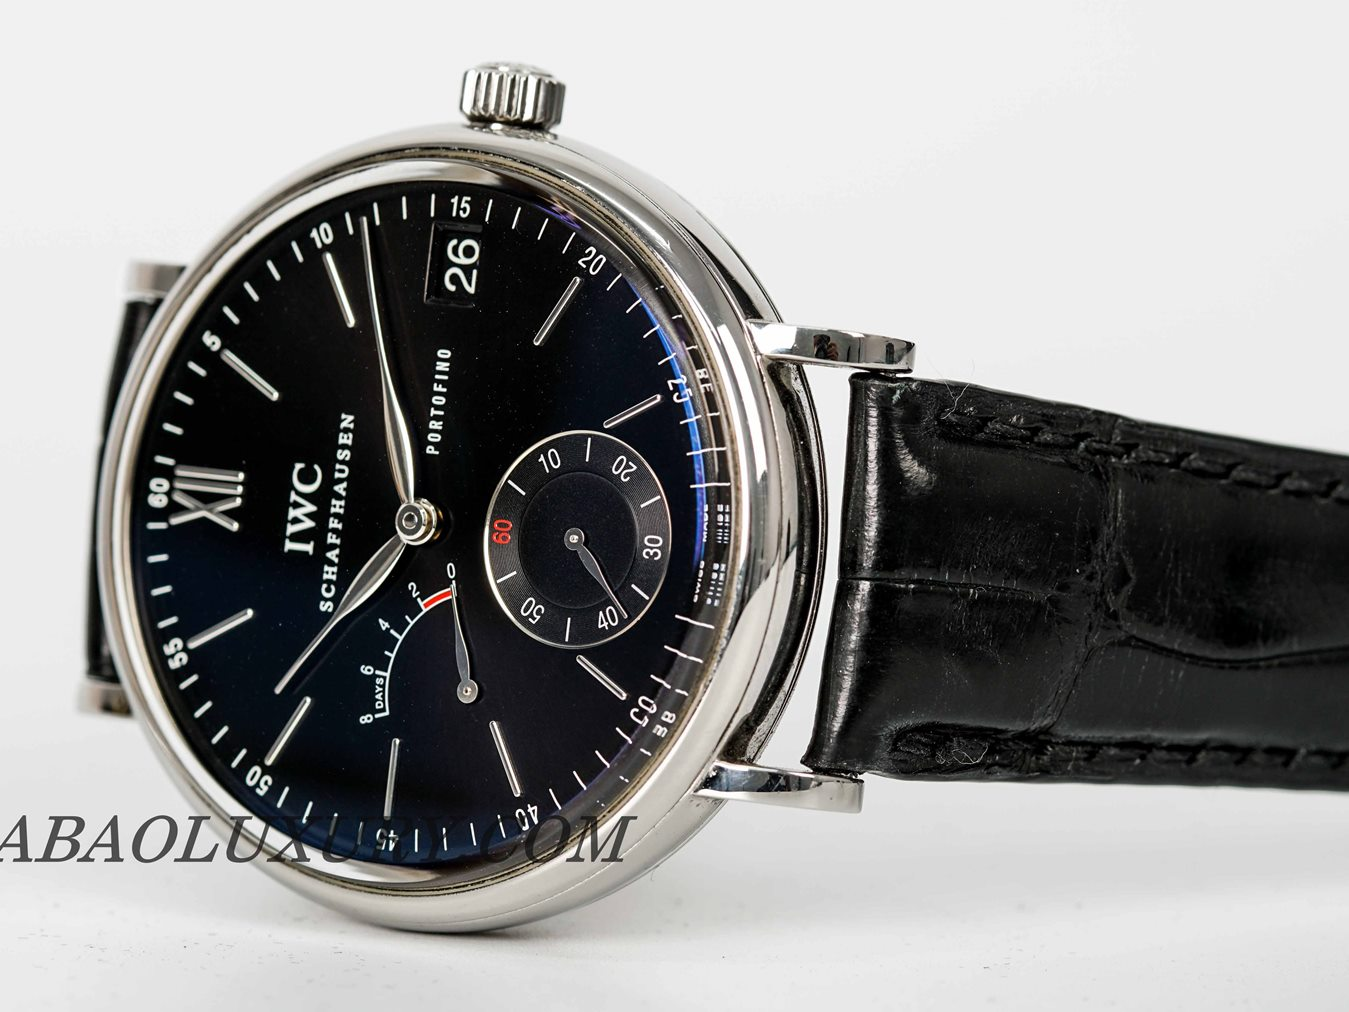 Đồng Hồ Iwc Portofino Manual Wind Eight Days